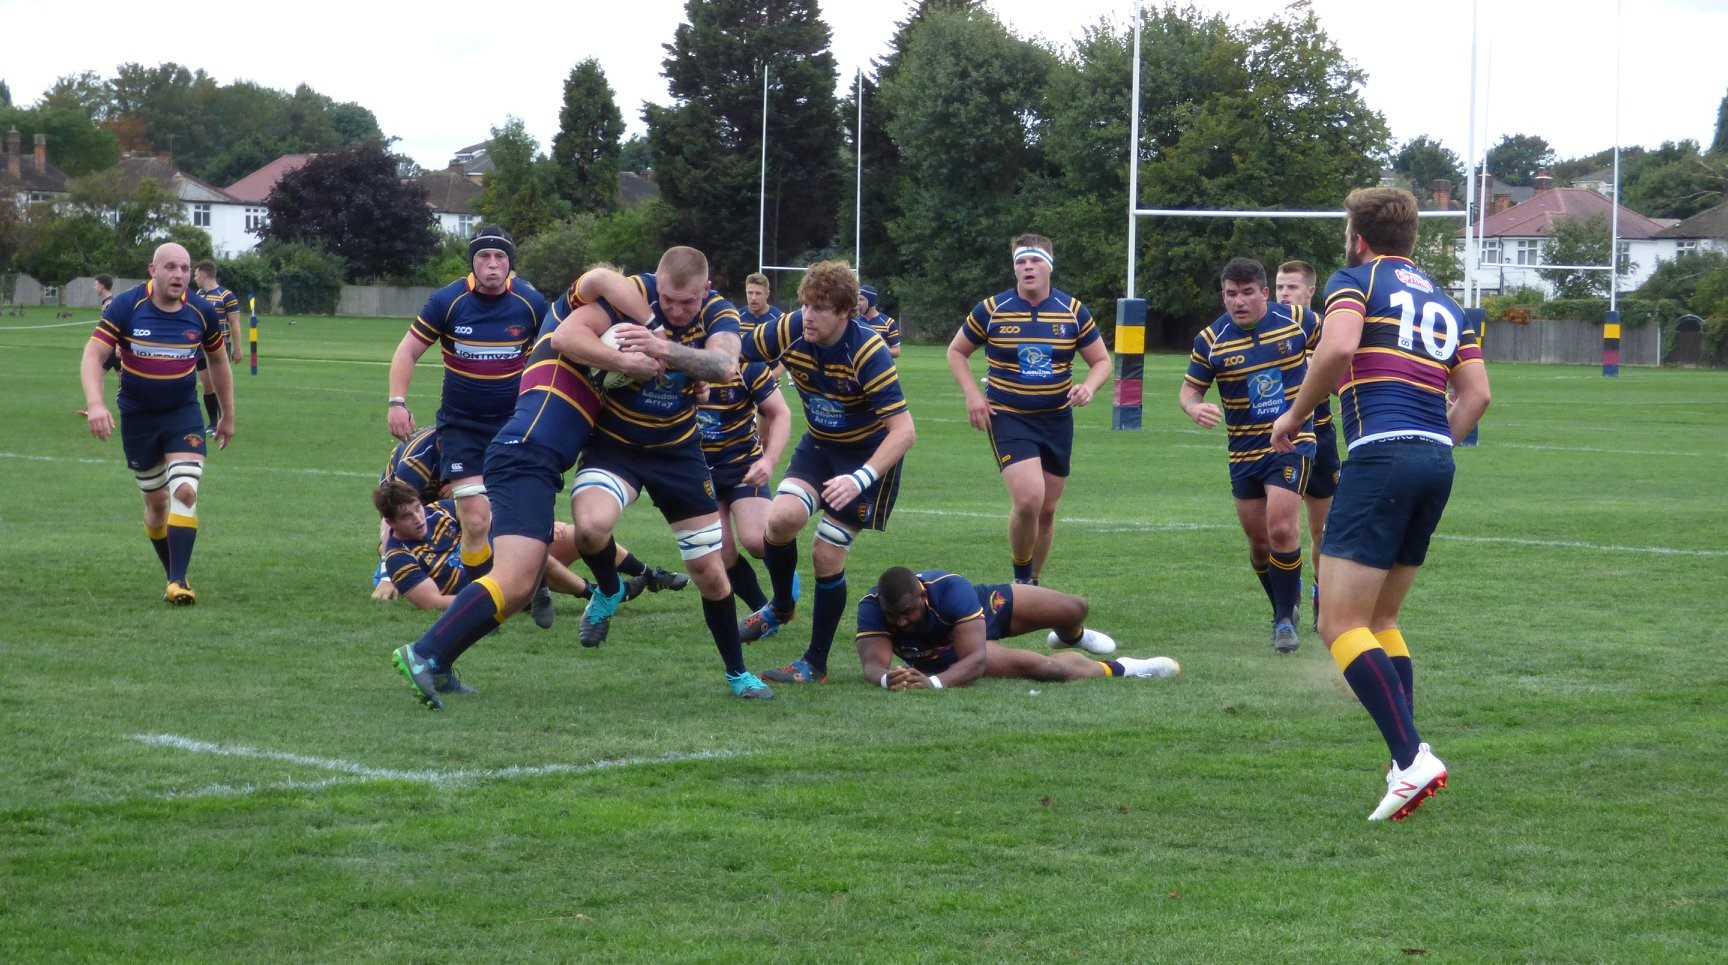 Wanderers 1st XV at Colfeians 8.9.18 Gallery Image - Thanet Wanderers RUFC